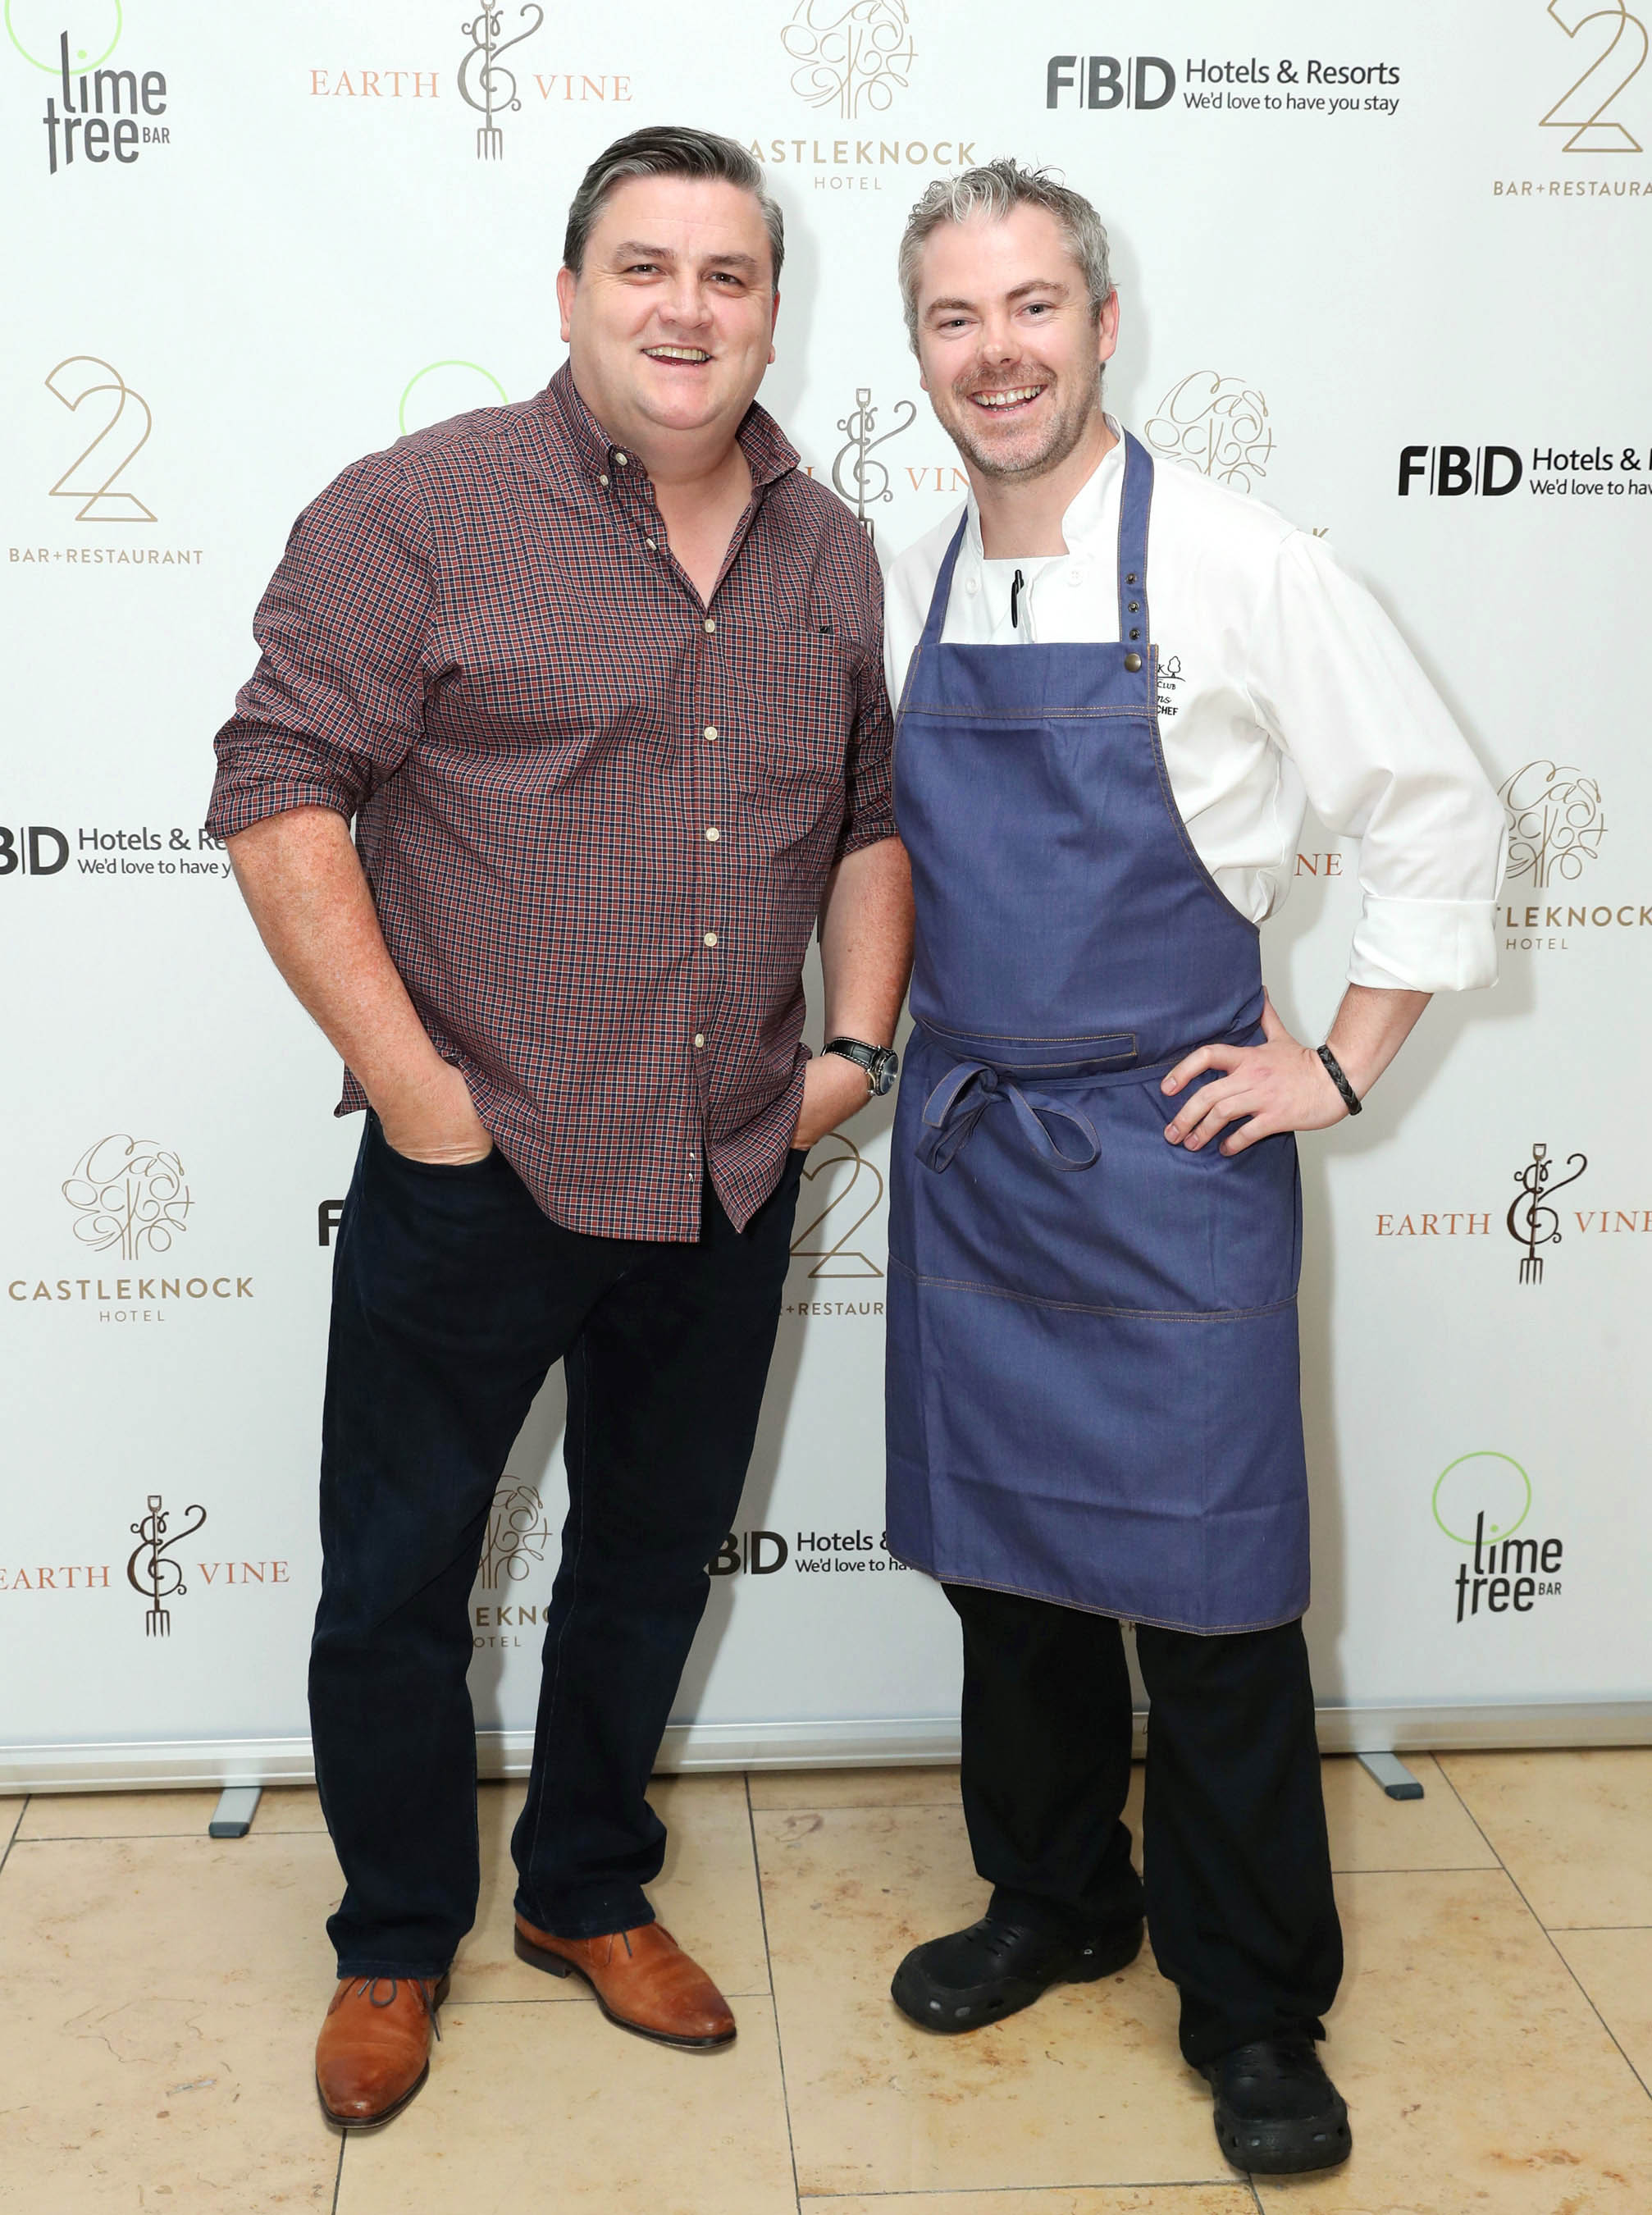 Simon Delaney-Chef-Actor-Neal Kearns- Simply Simon's-Castleknock Hotel-22 Bar & Restaurant- Earth & Vine - FBD-Lime Tree